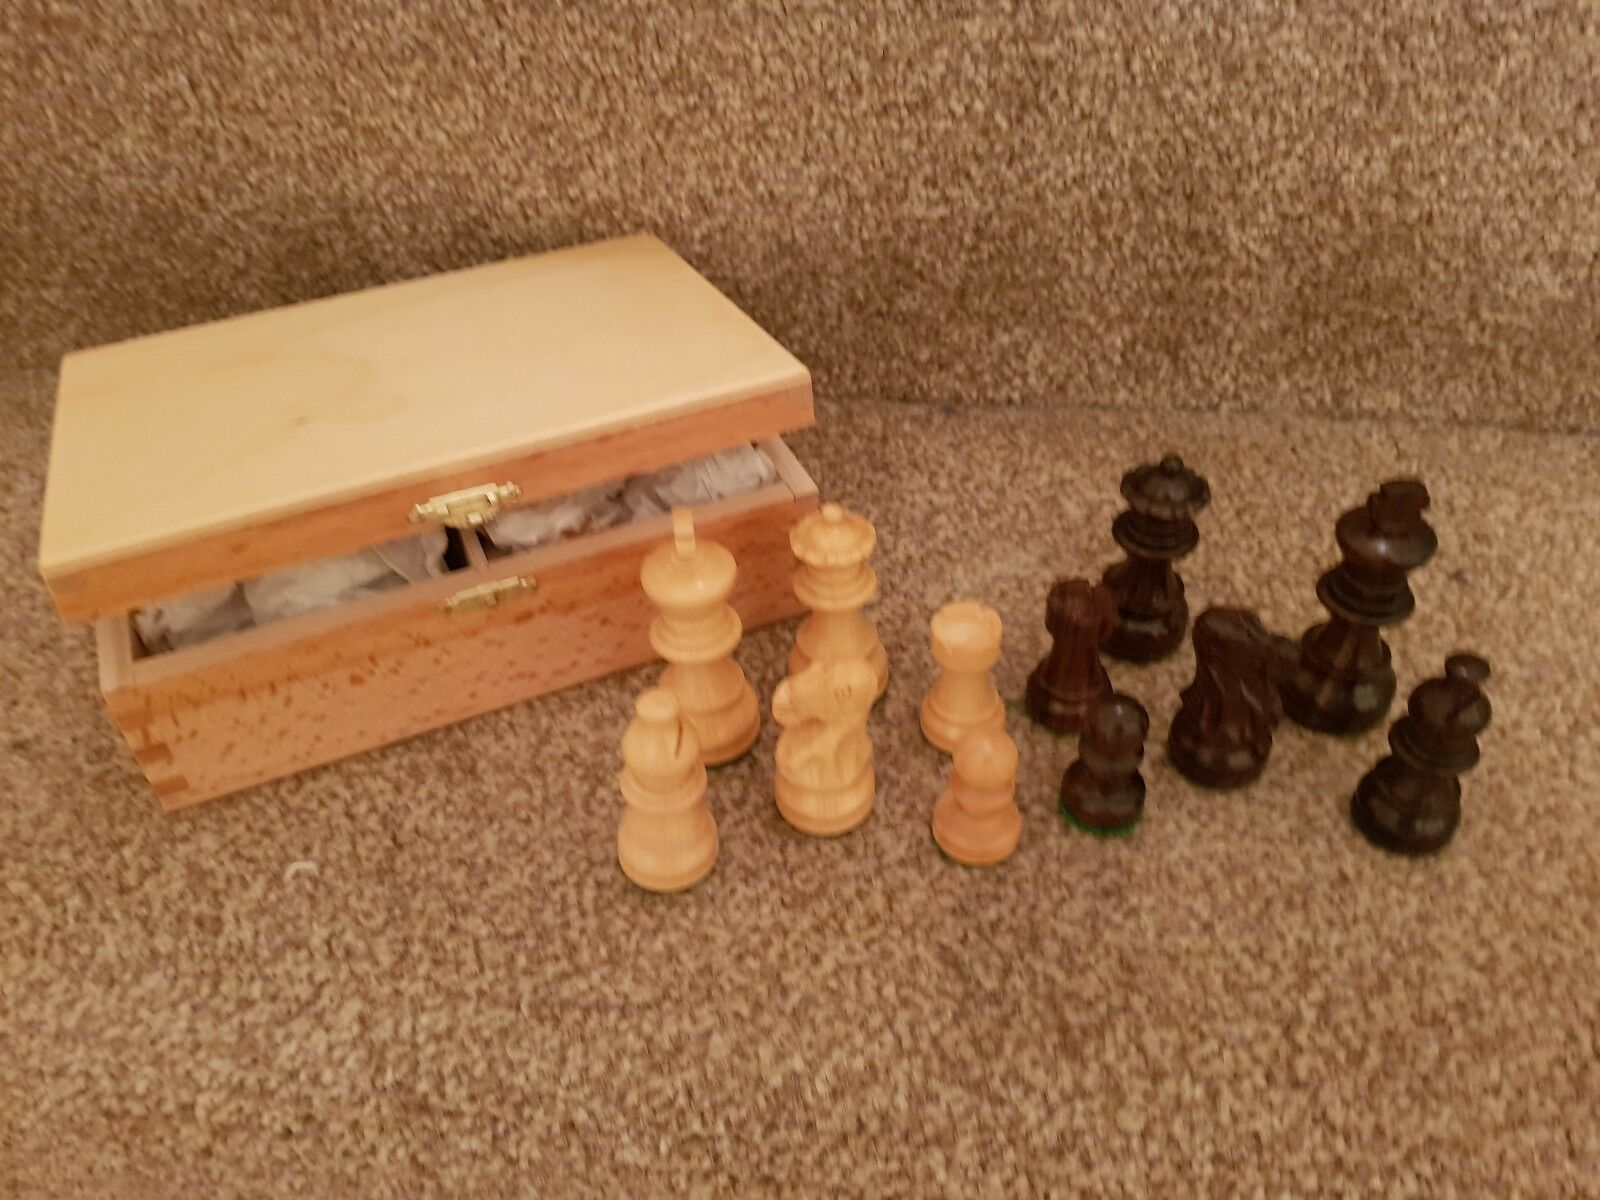 New top quality wooden Staunton chessmen - 2.5 inch king in varnished wooden box